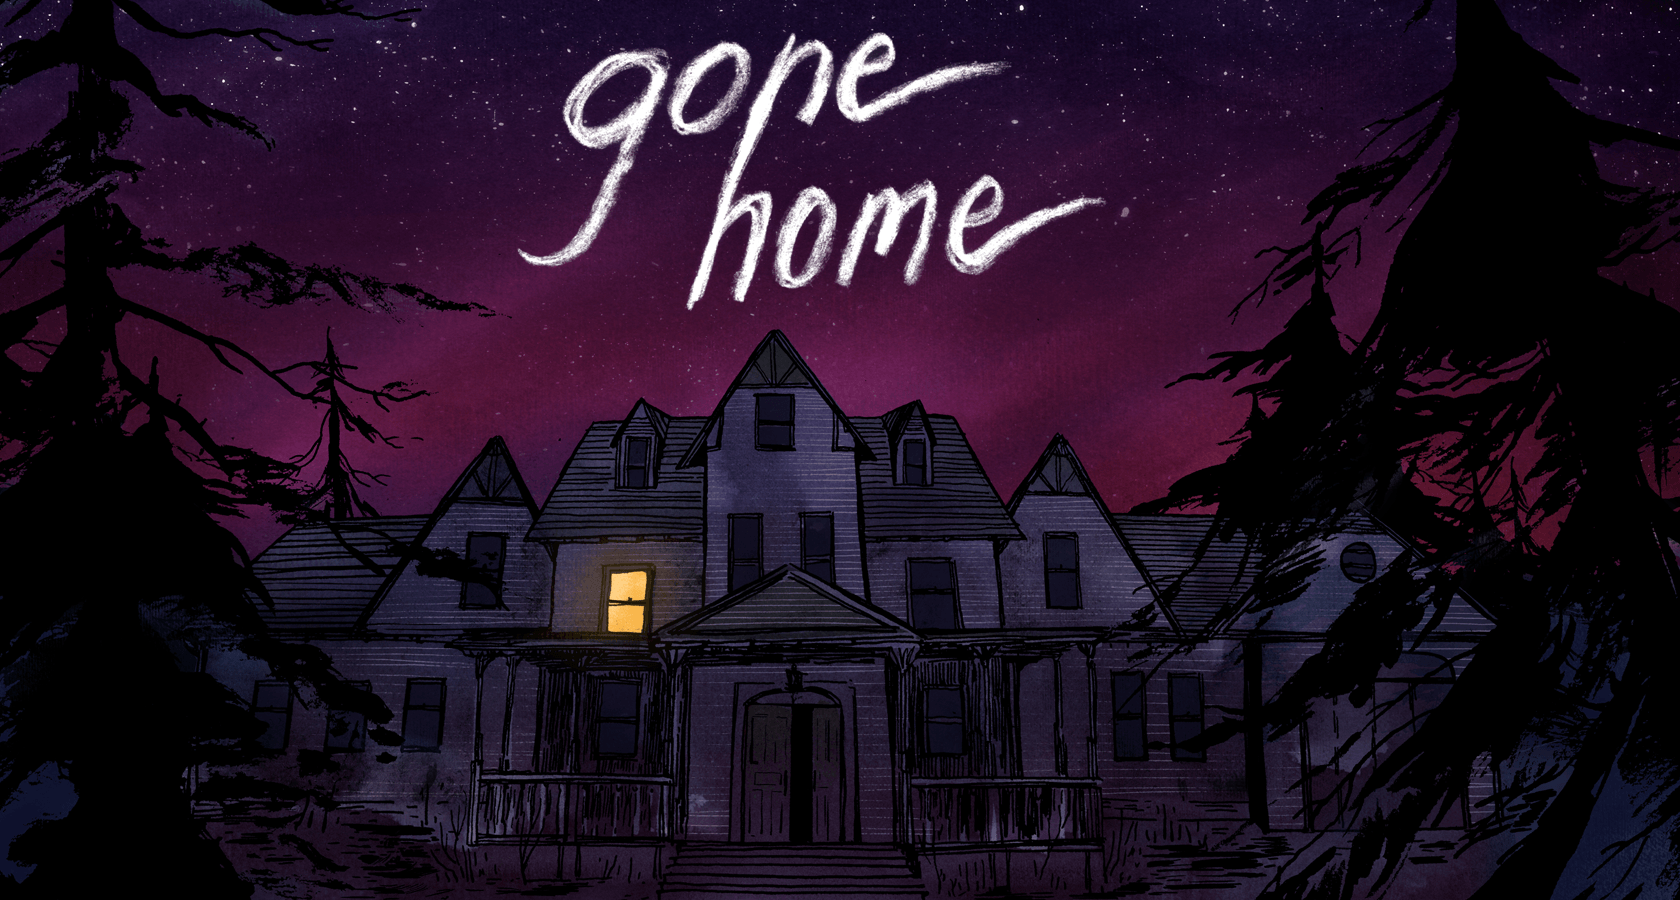 Gone Home Review: Please Don't Go